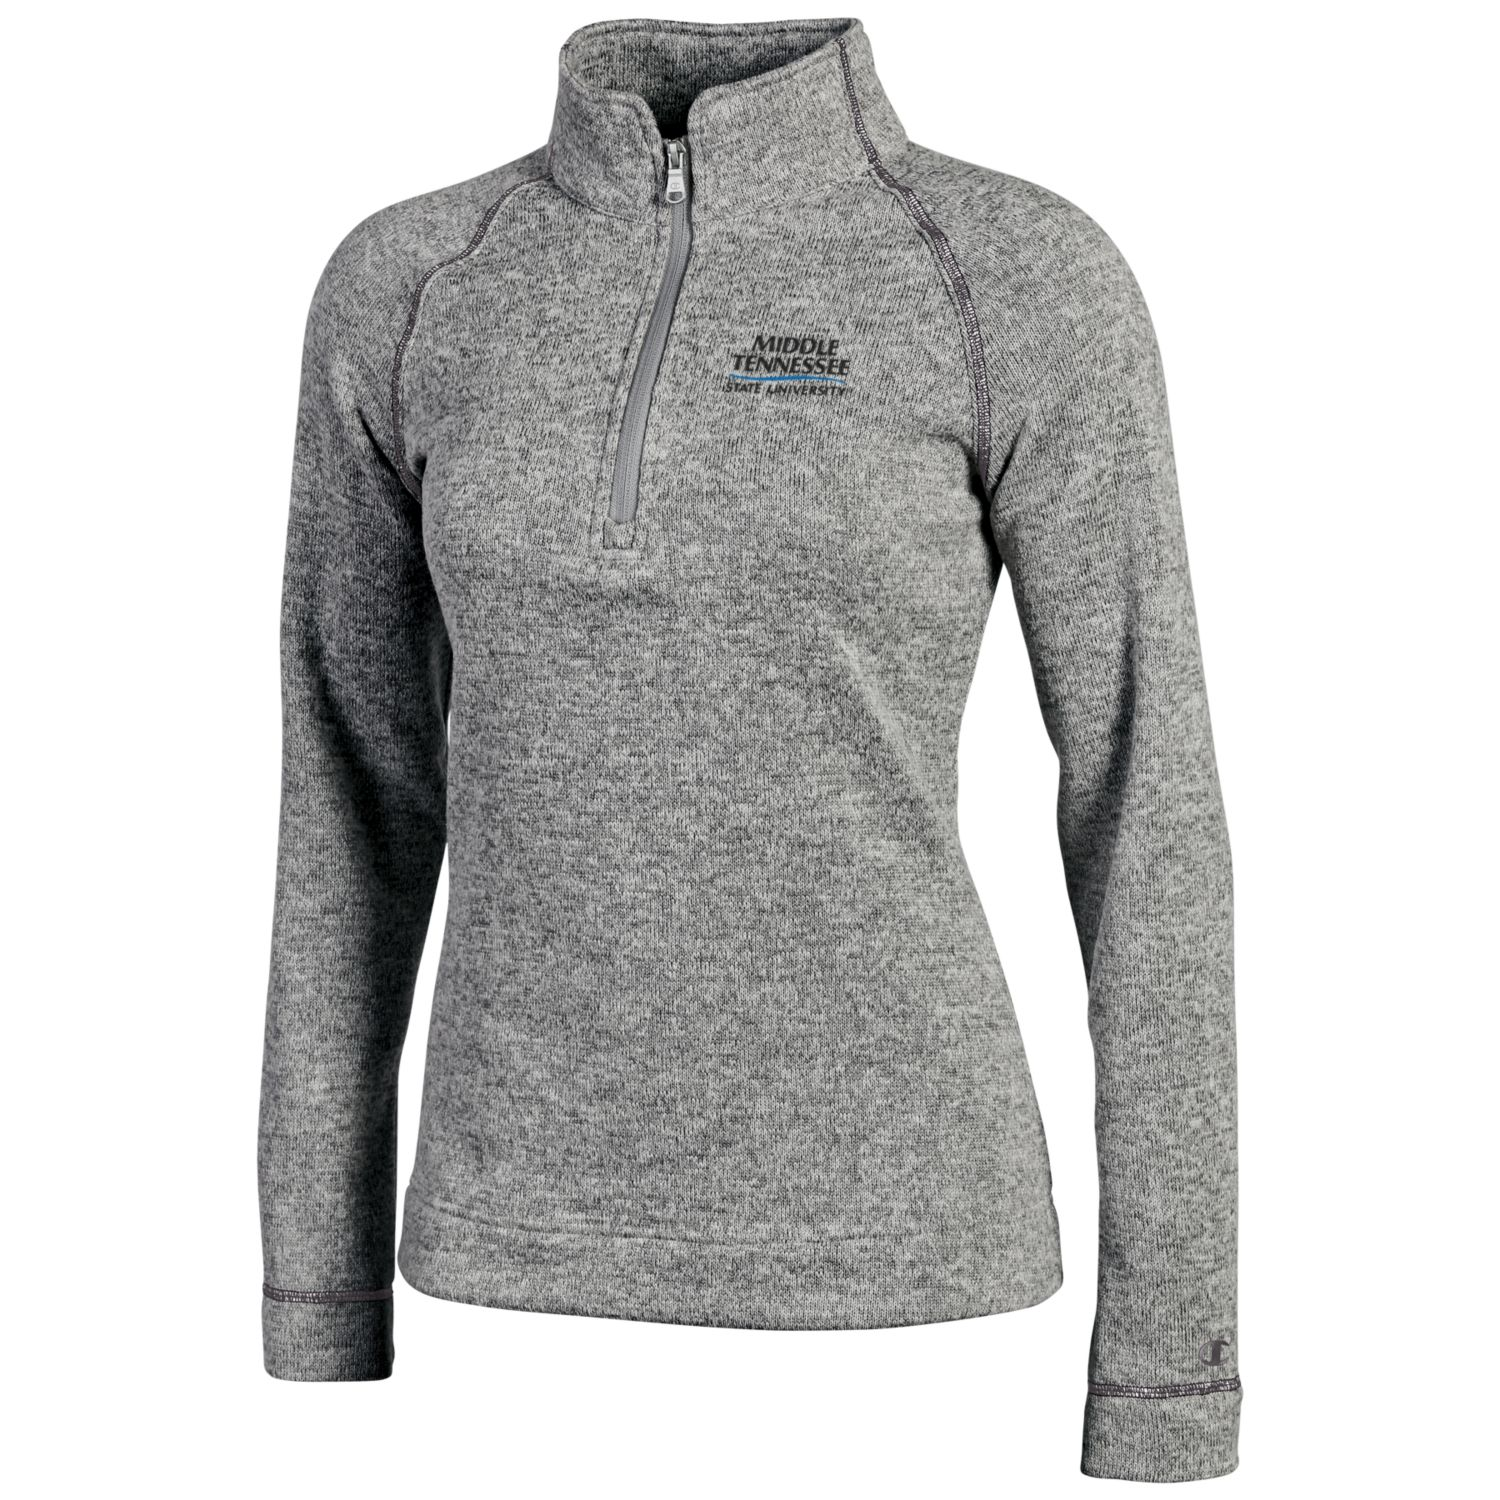 Middle Tennessee School Logo Women's Artic 1/4 Zip Pullover